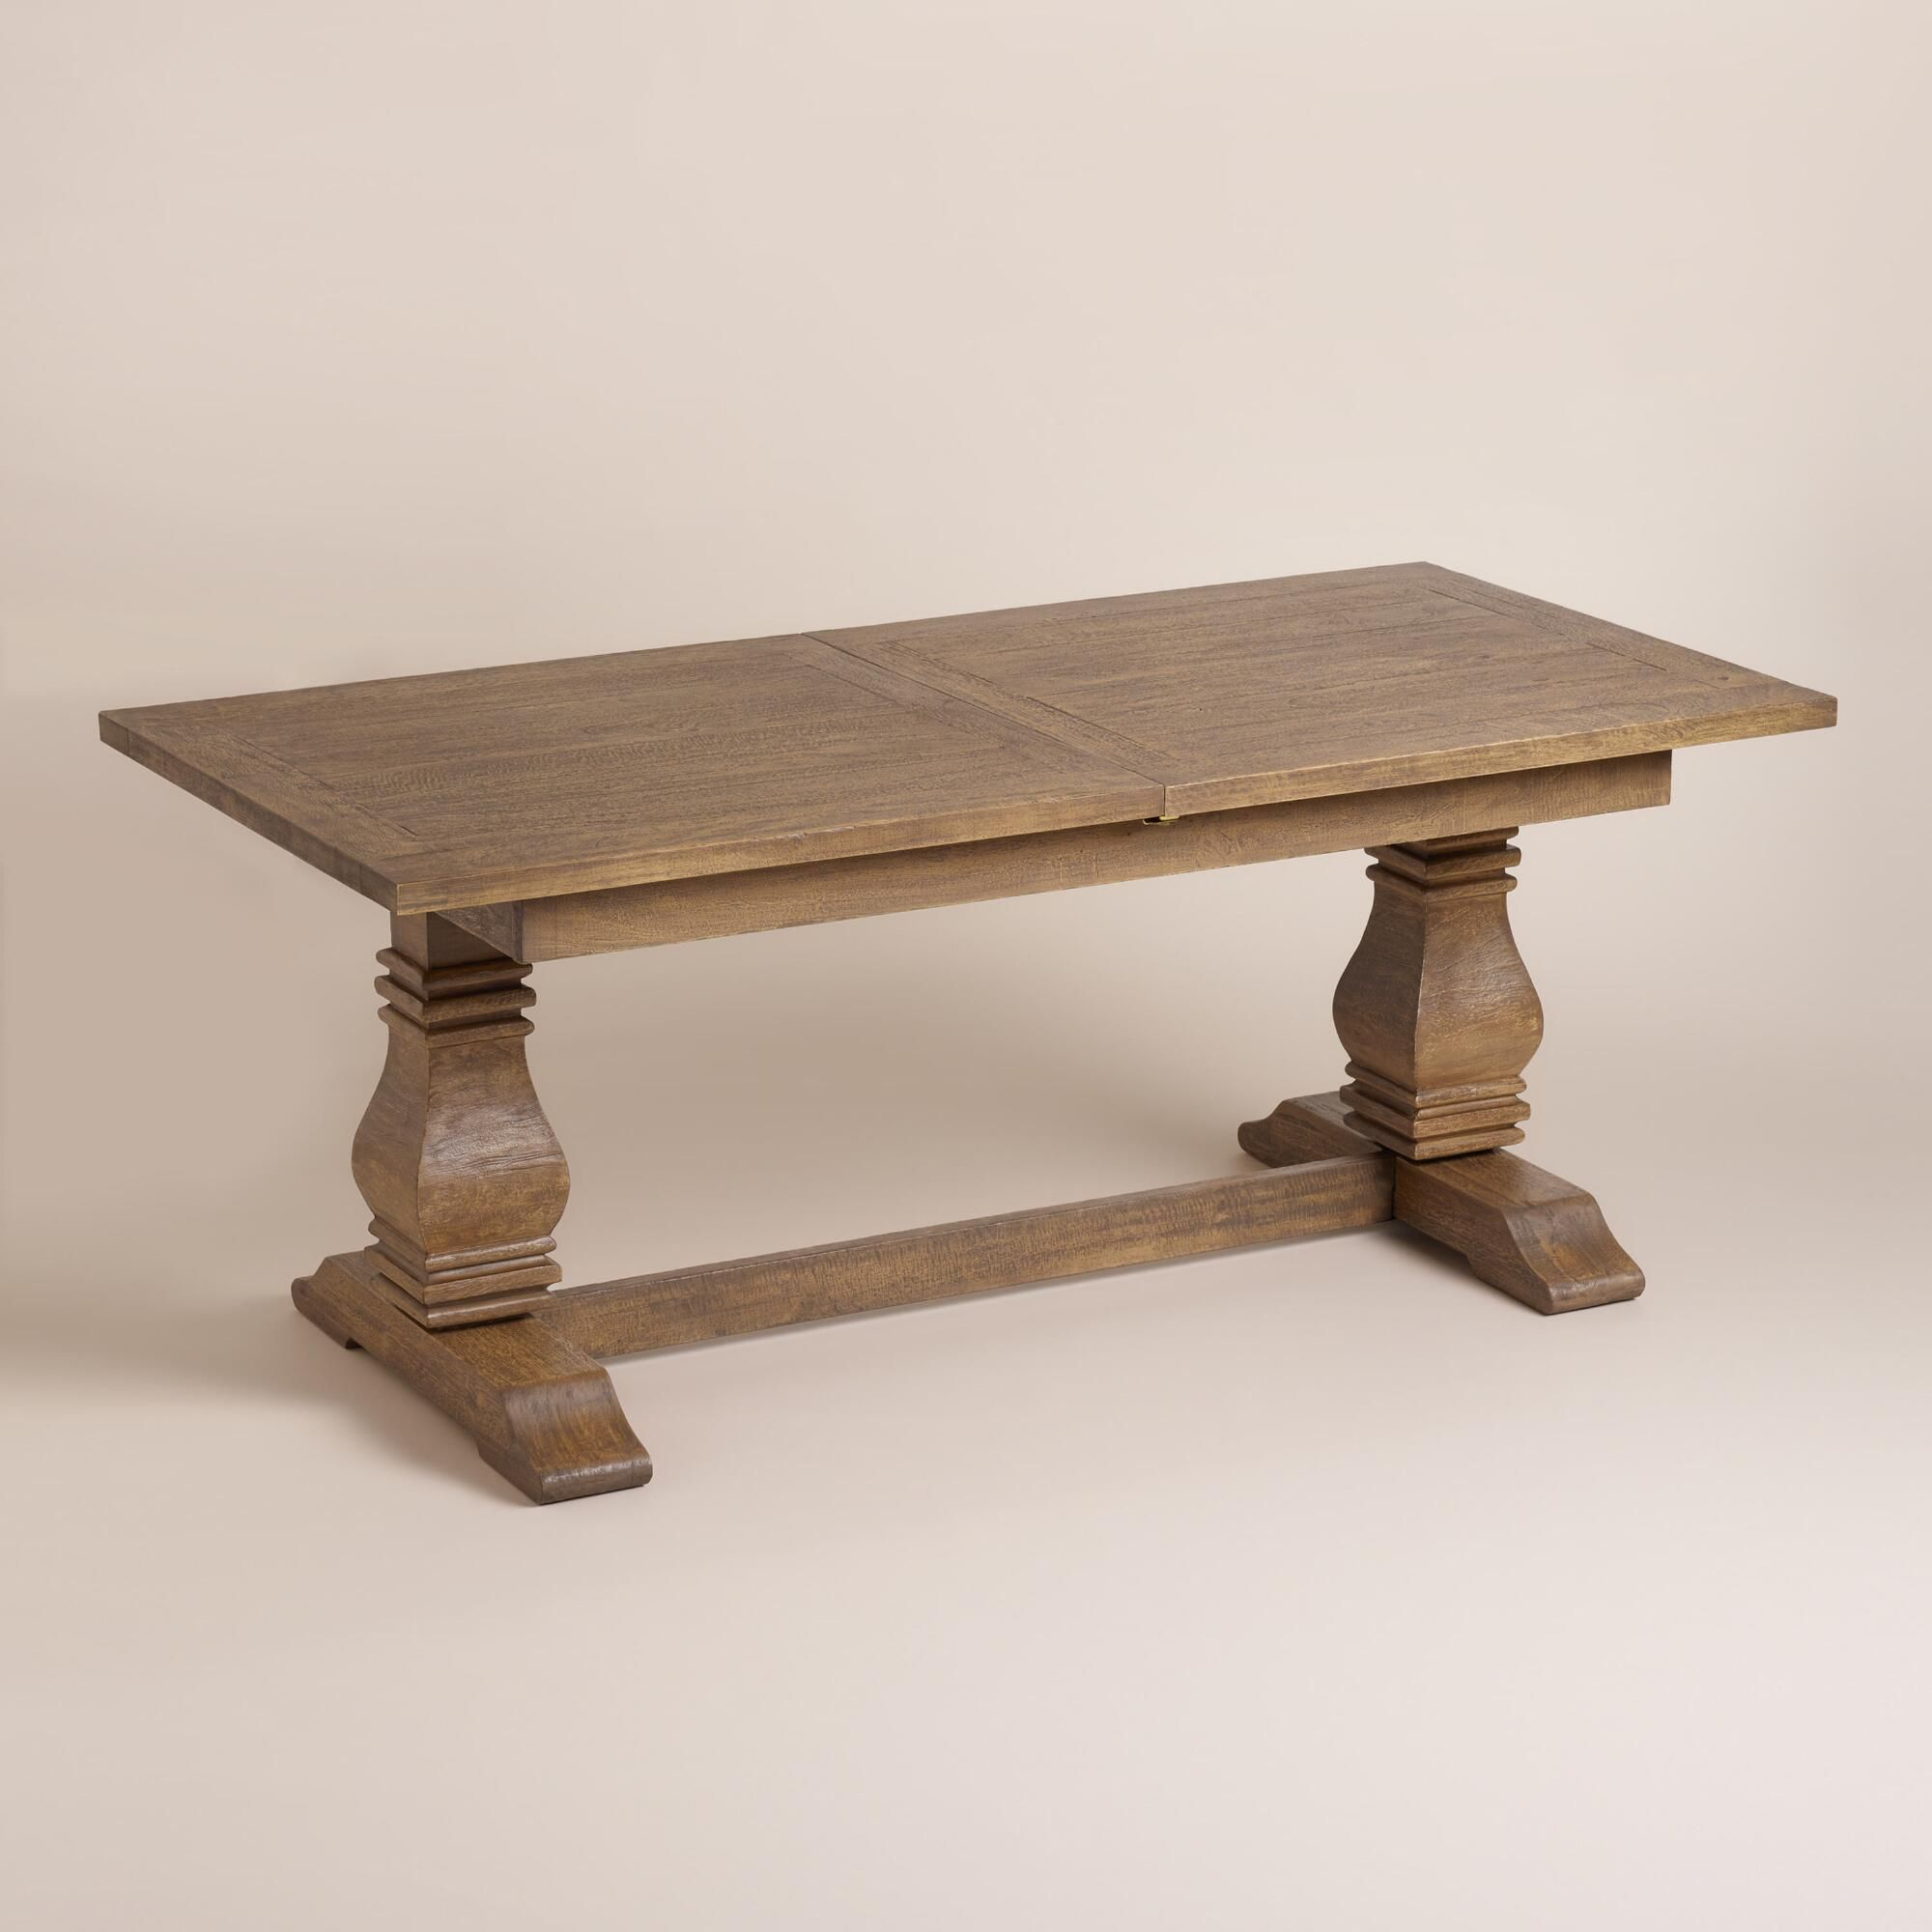 Wood deighton extension dining table more country style for Country style table